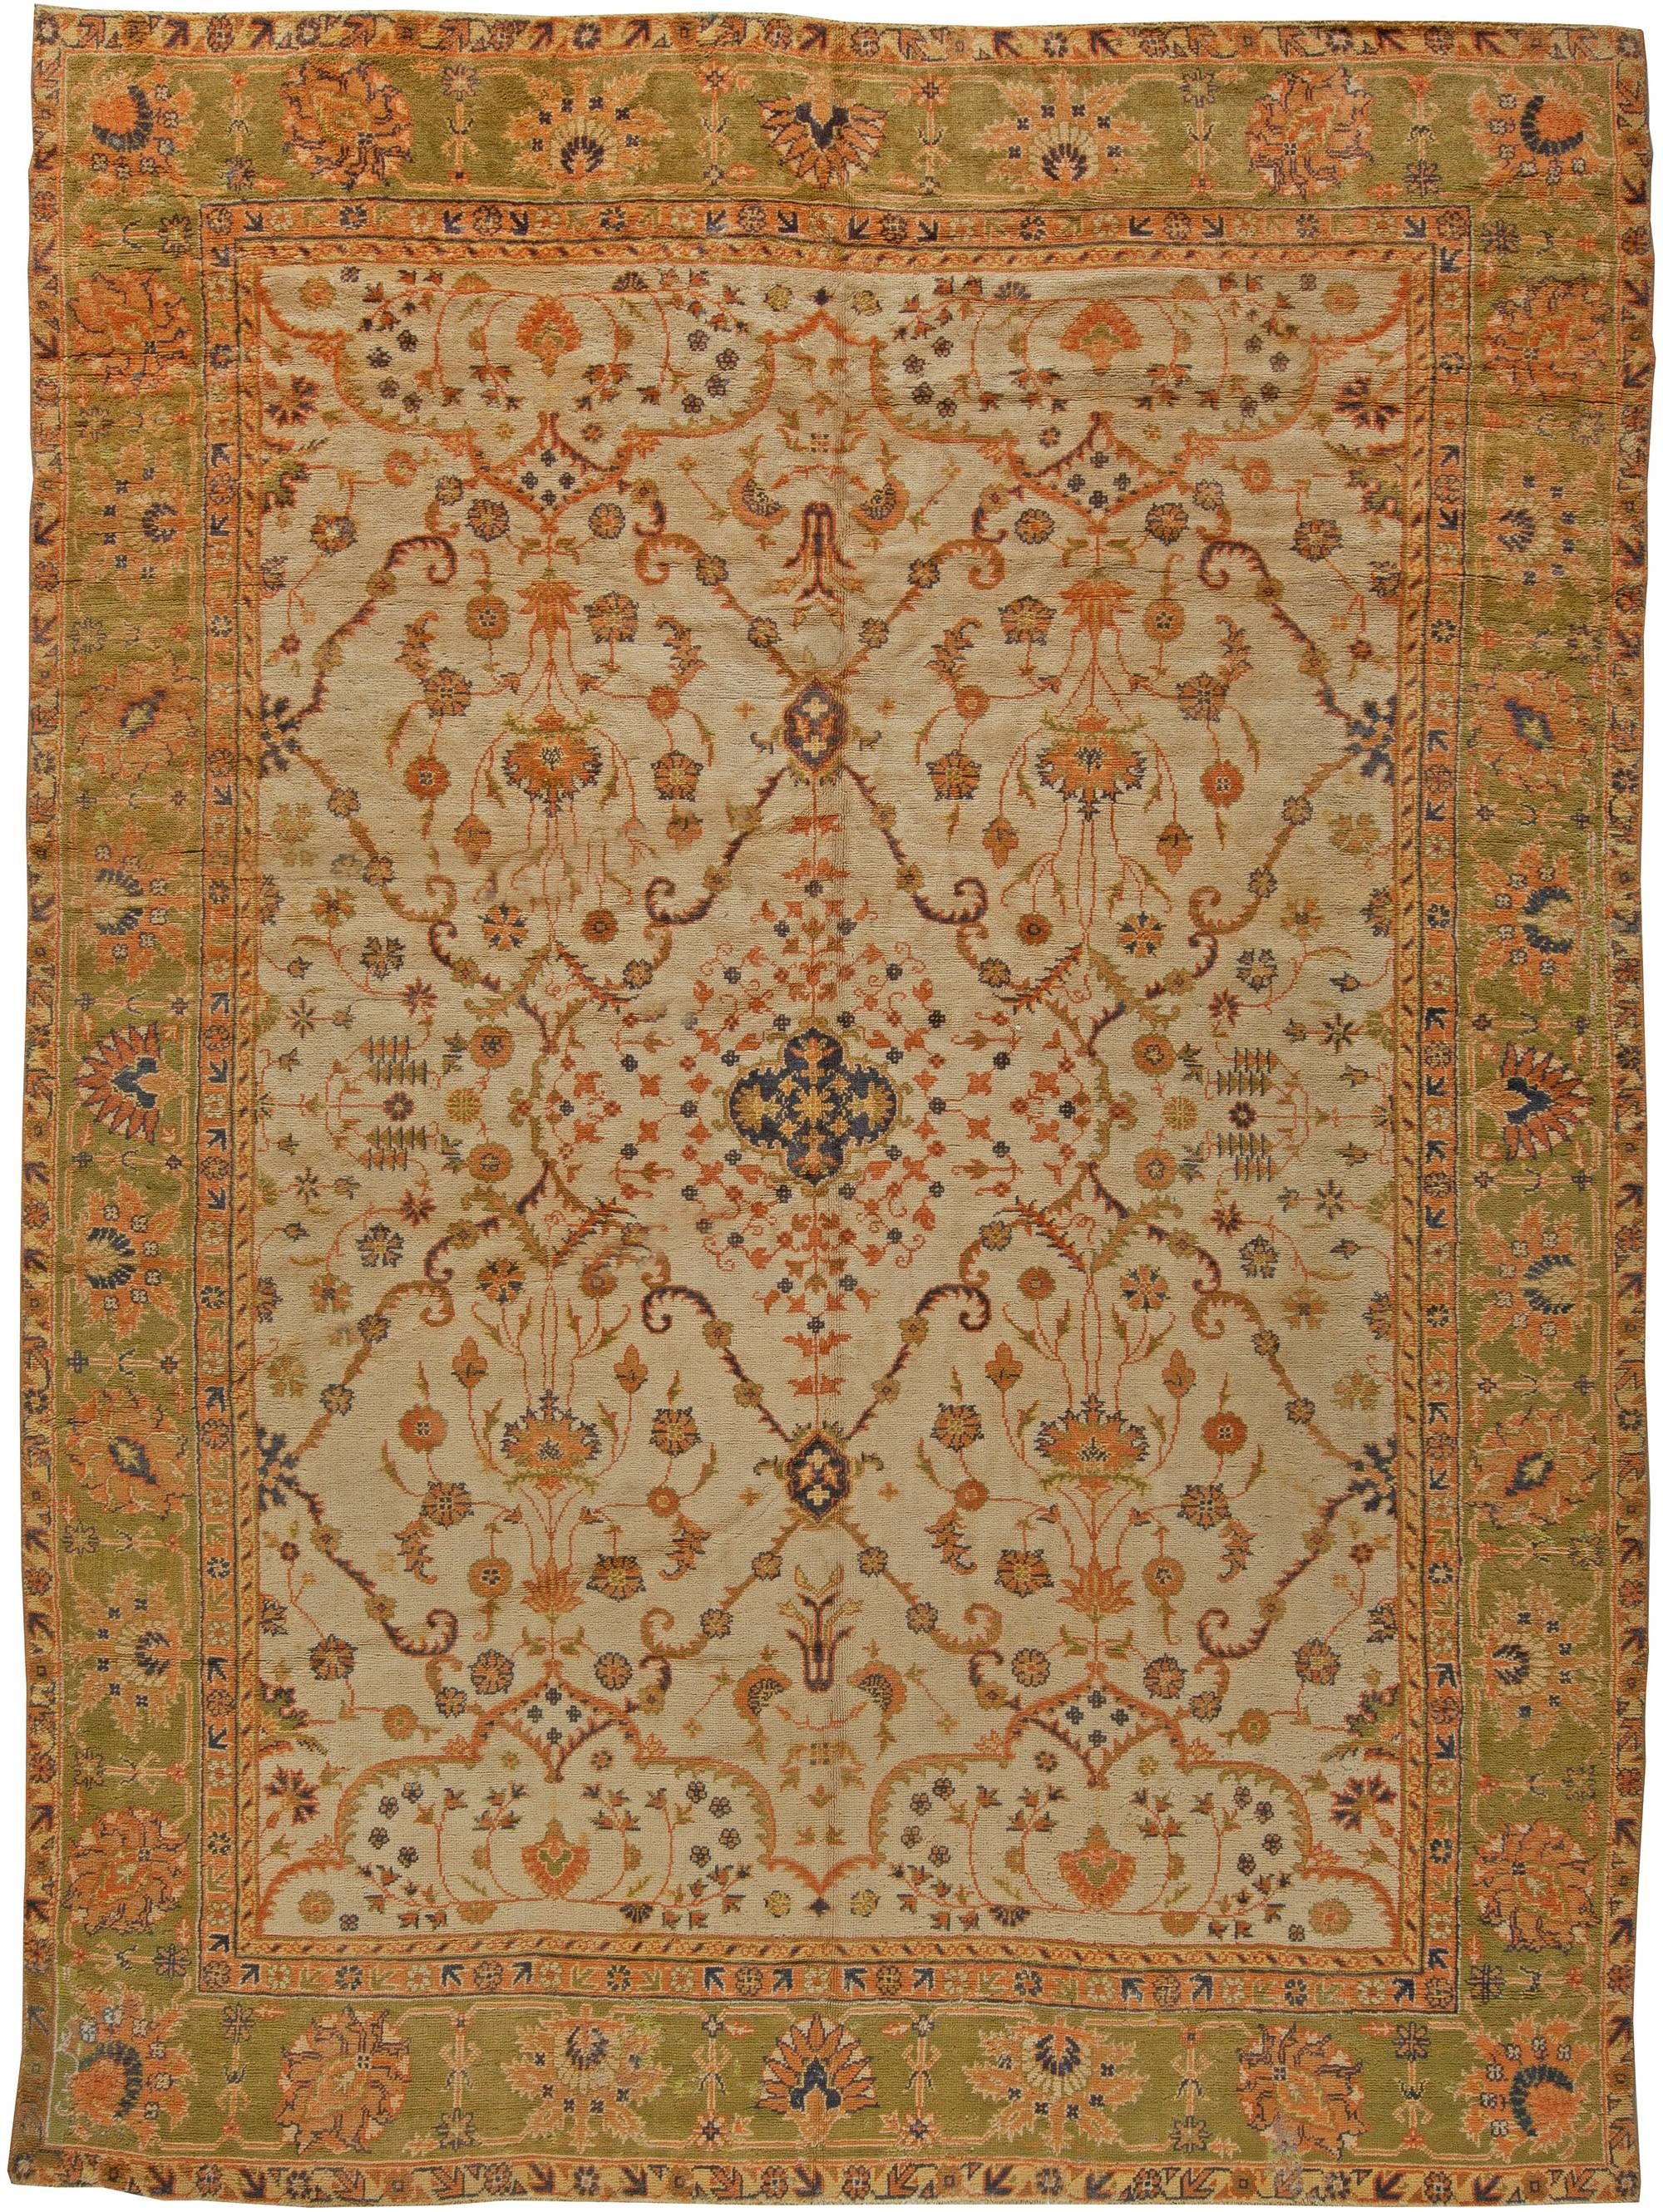 Antique Turkish Rugs Amp Kilim Carpets For Sale Area